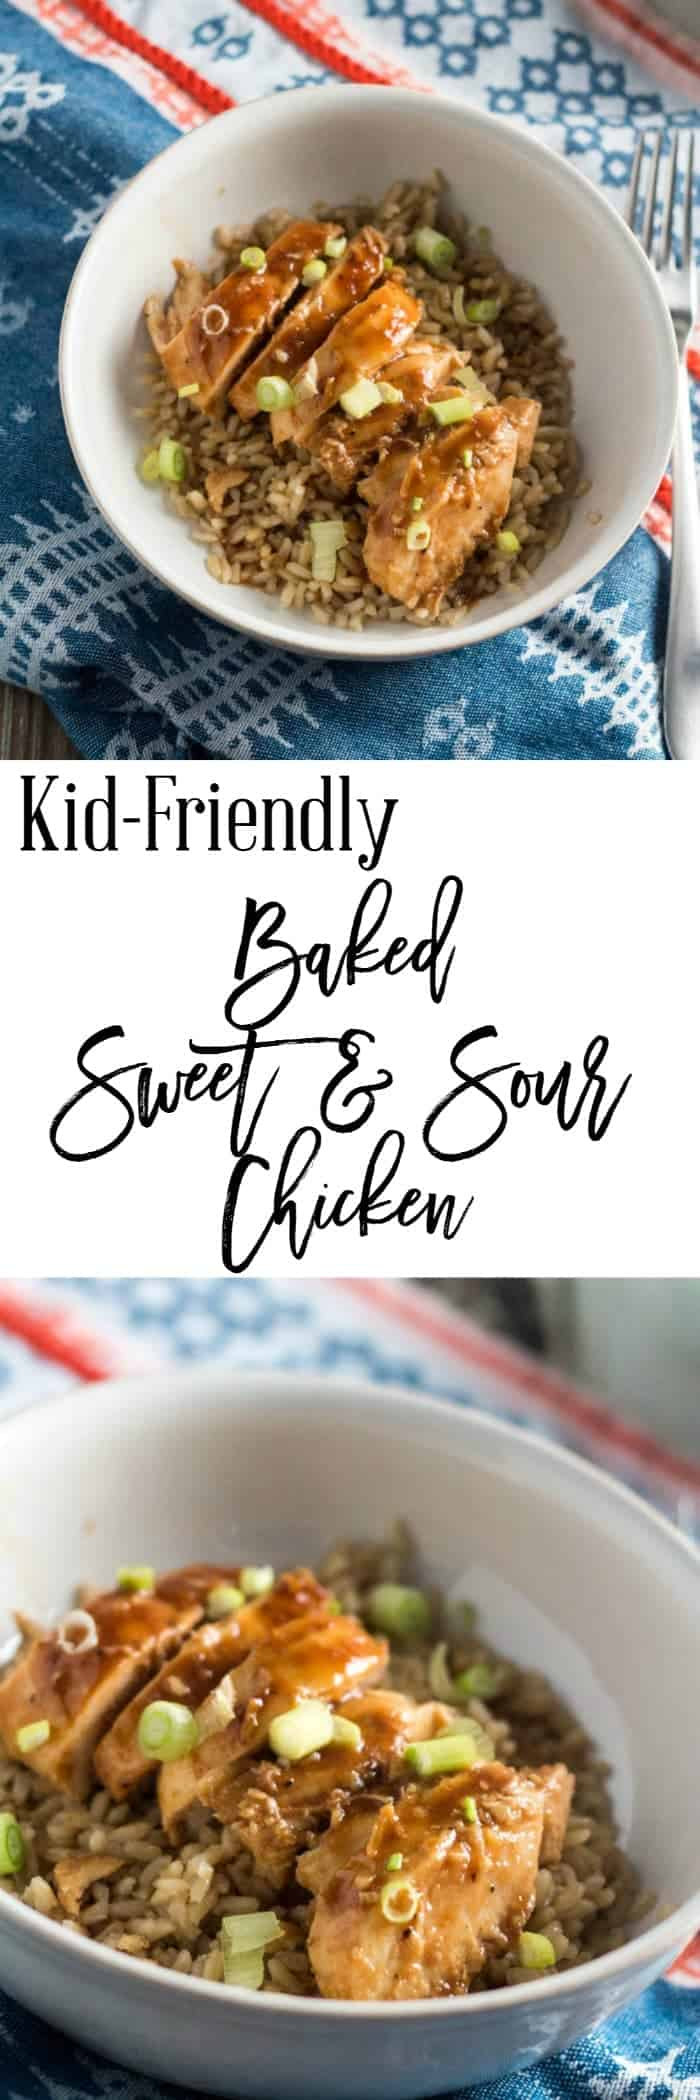 Kid-Friendly Baked Sweet and Sour Chicken with Rice